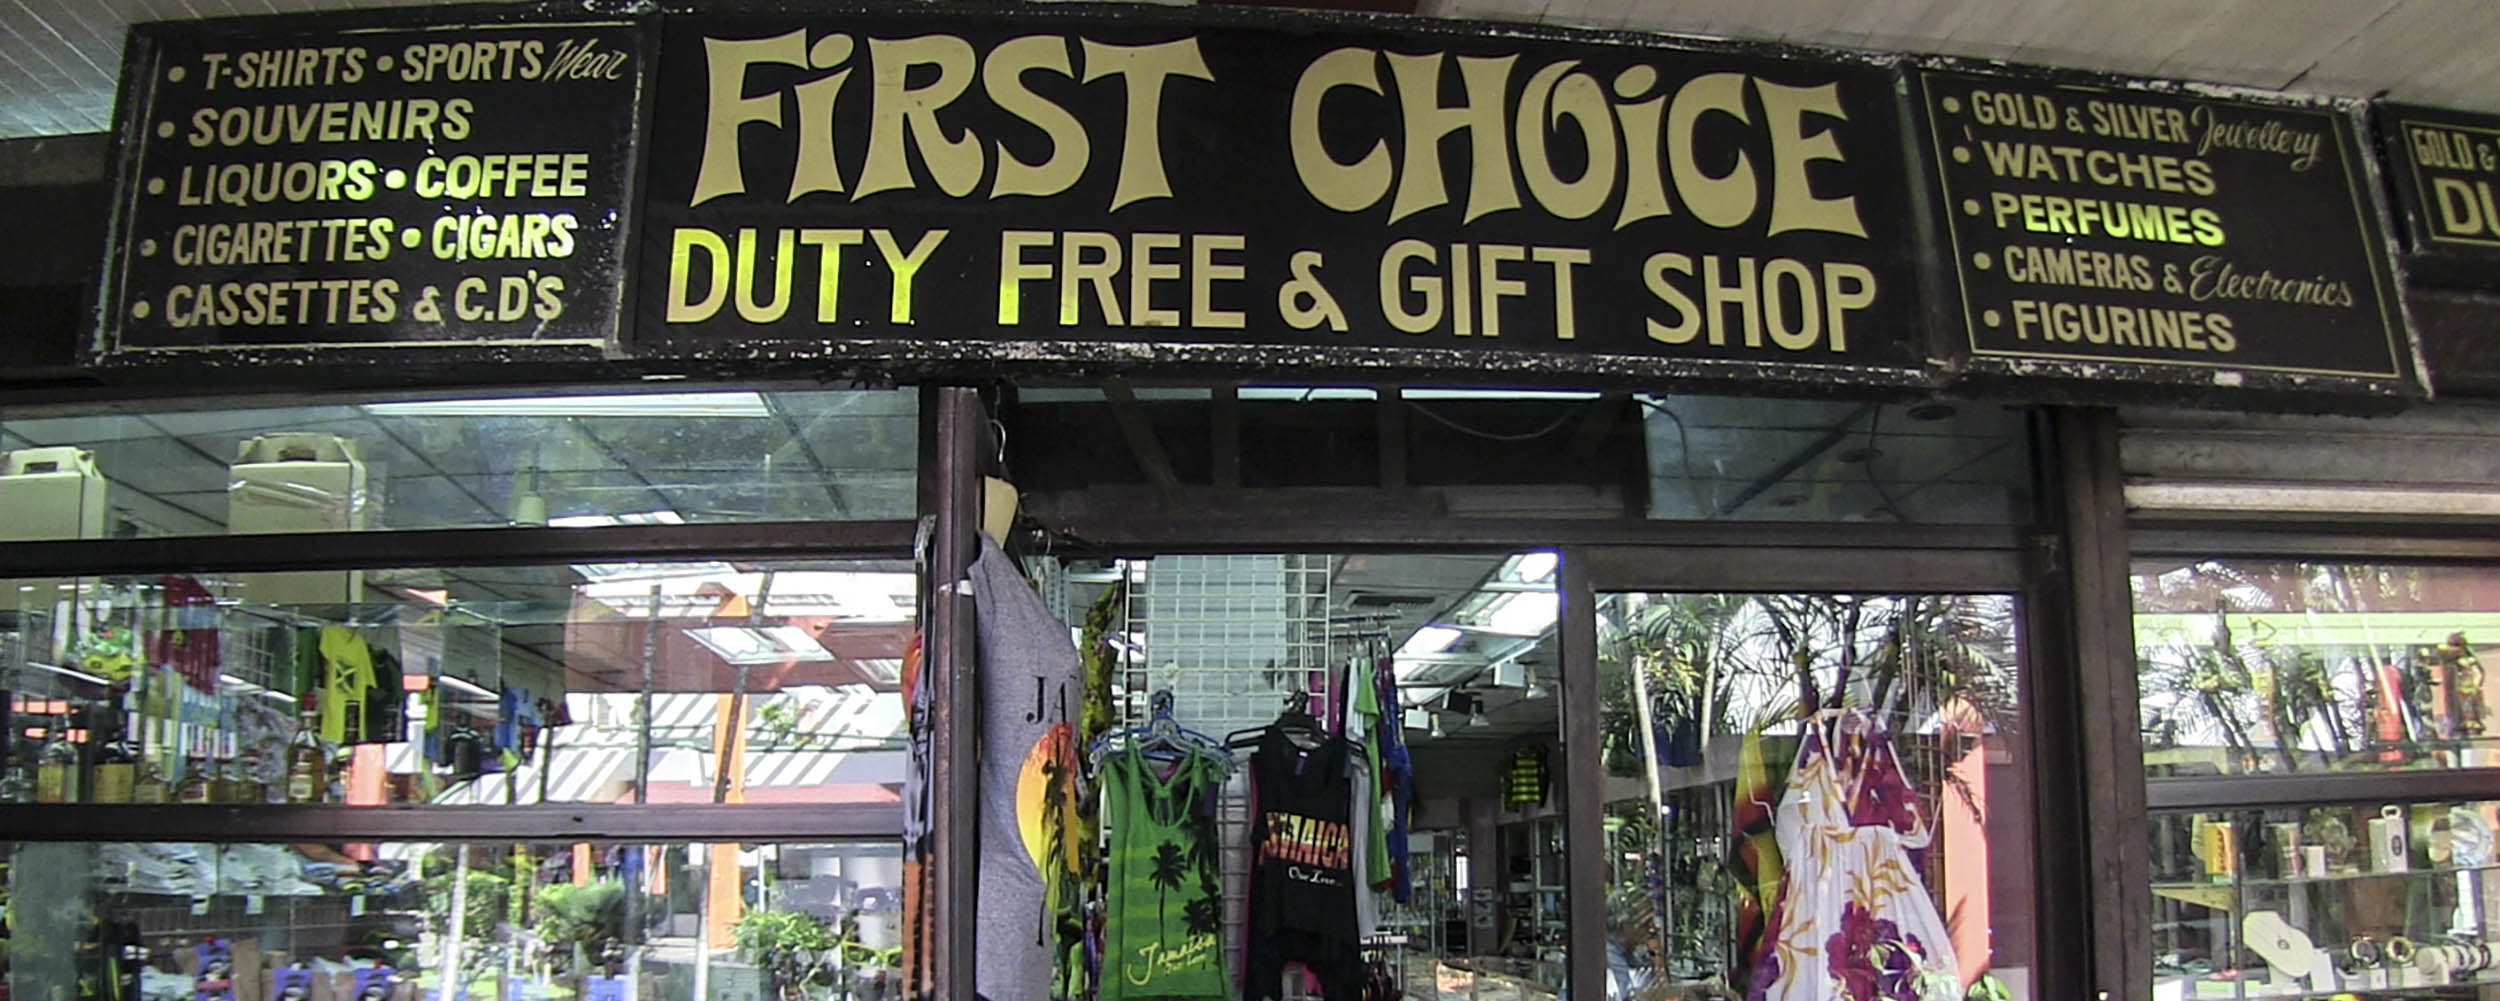 First Choice Duty Free - Sunshine Village Complex - Negril Jamaica